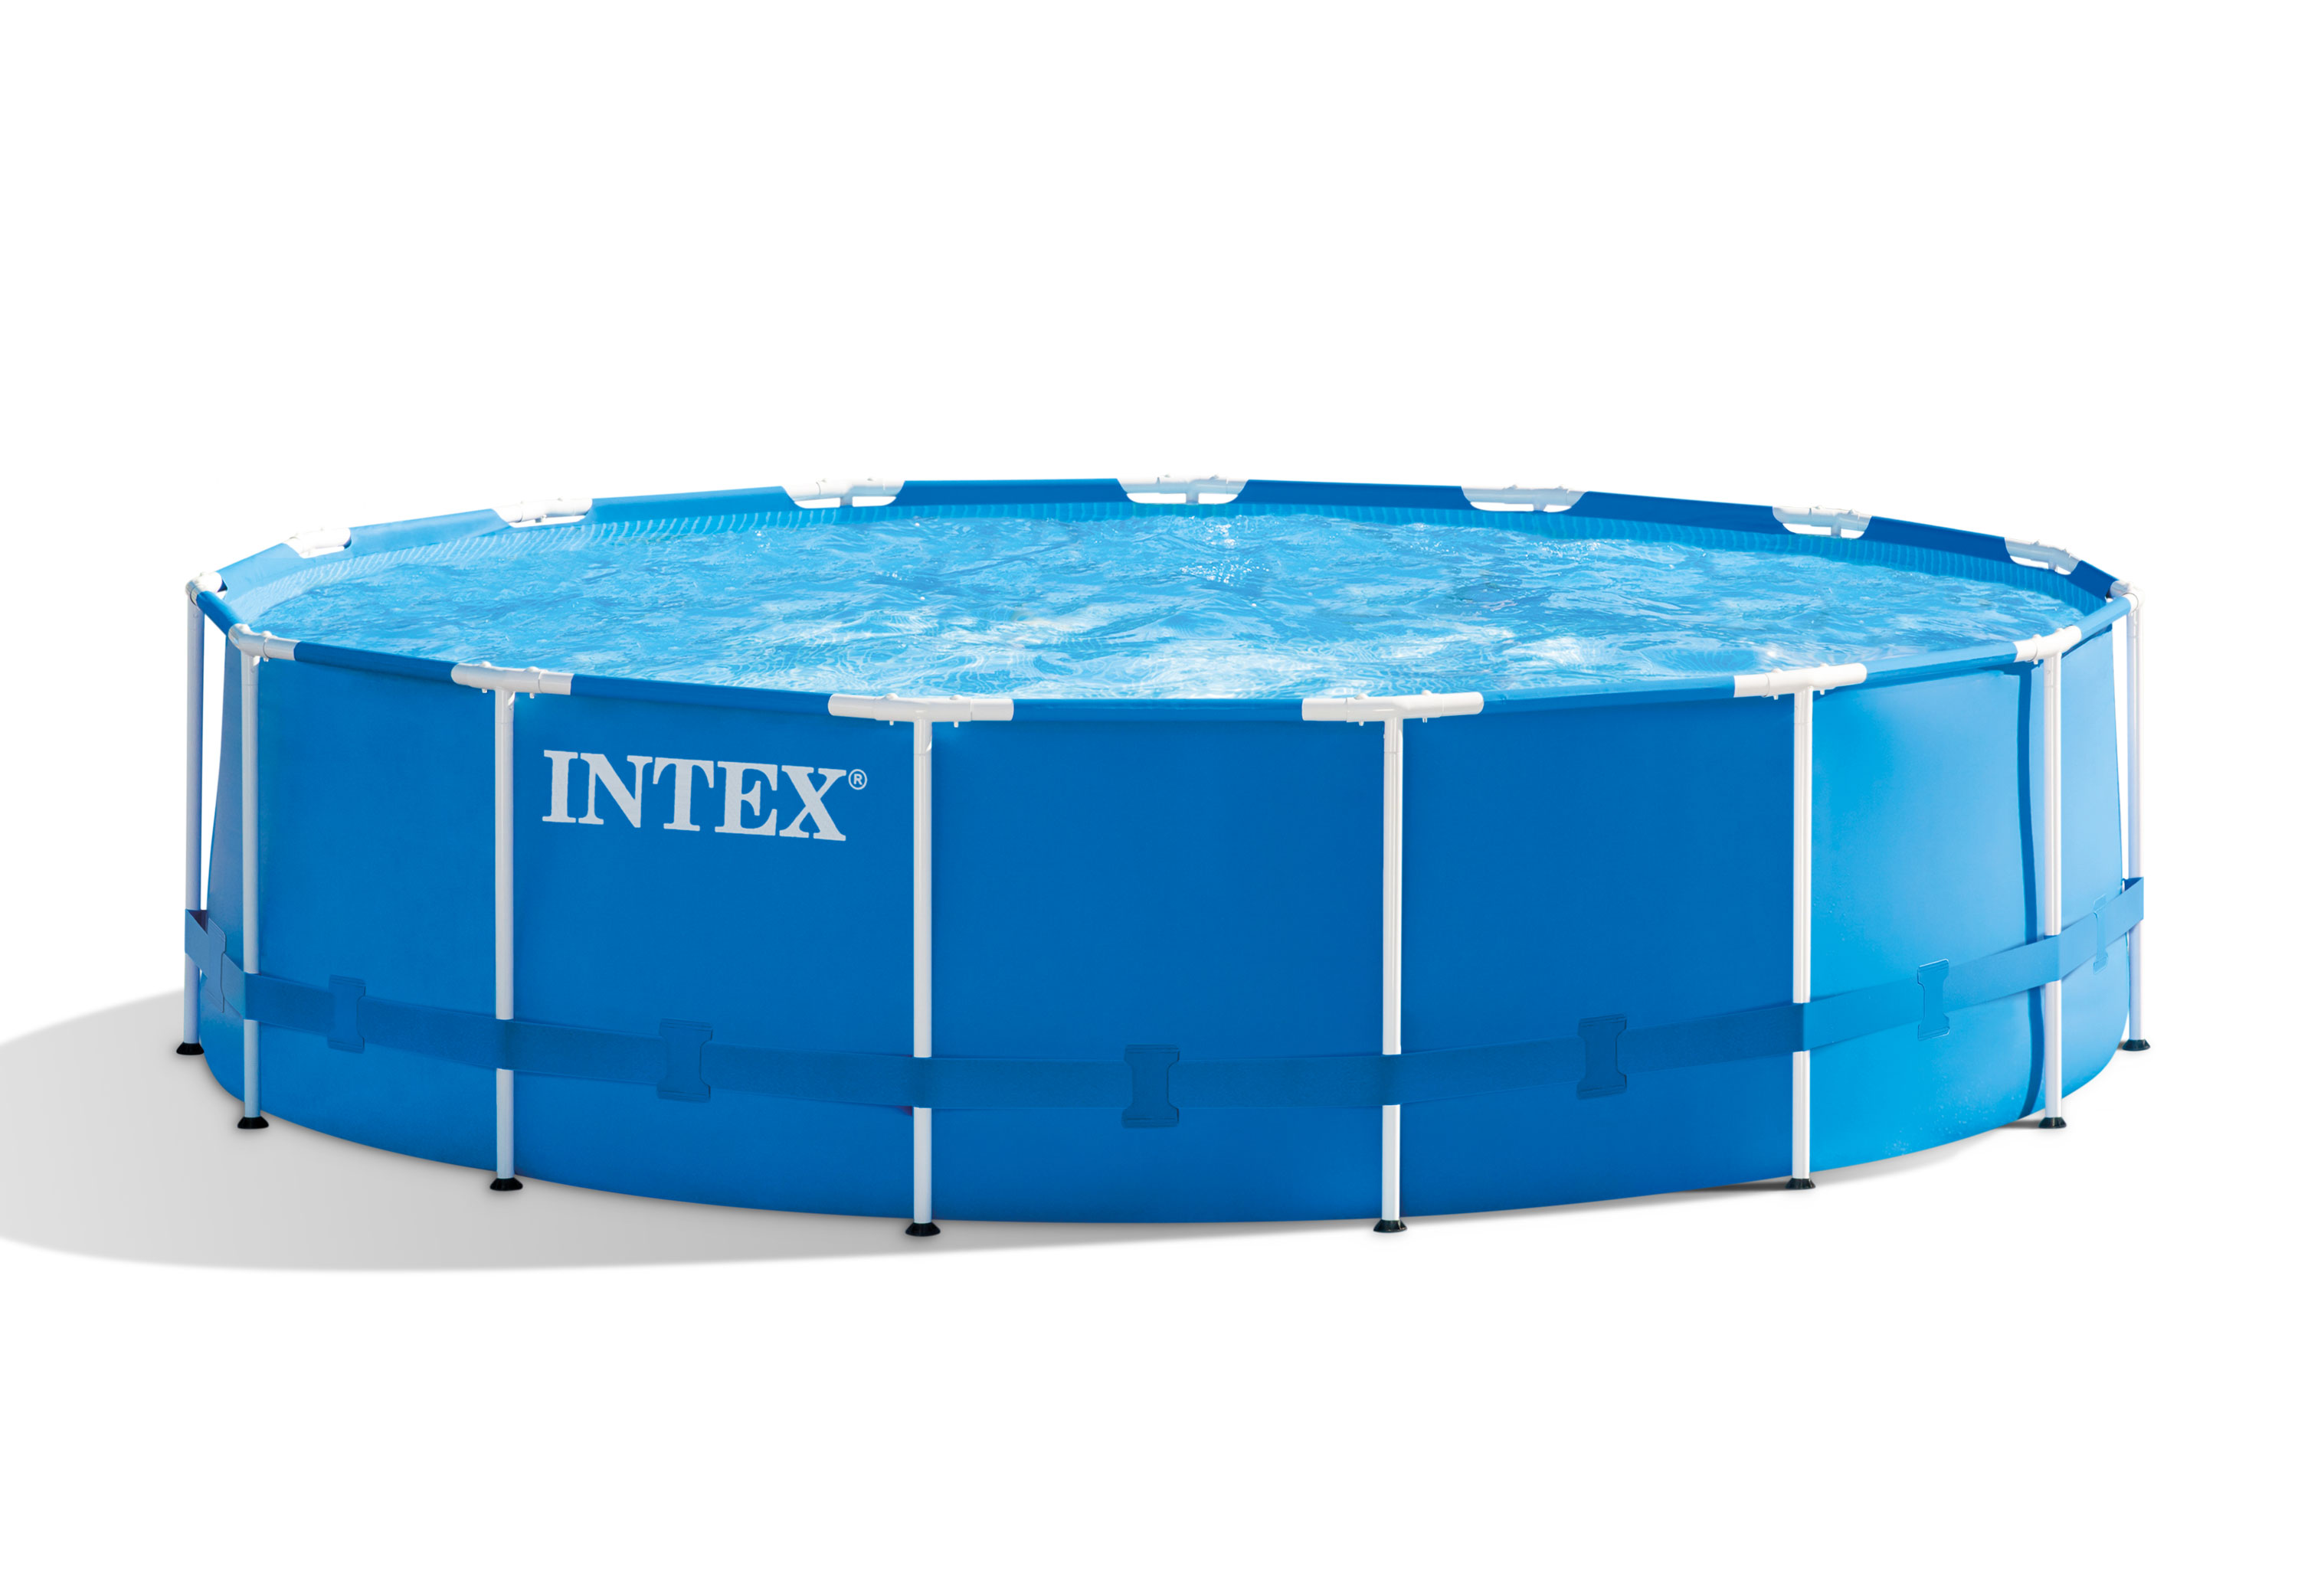 intex 15 39 x 48 metal frame swimming pool set w pump and